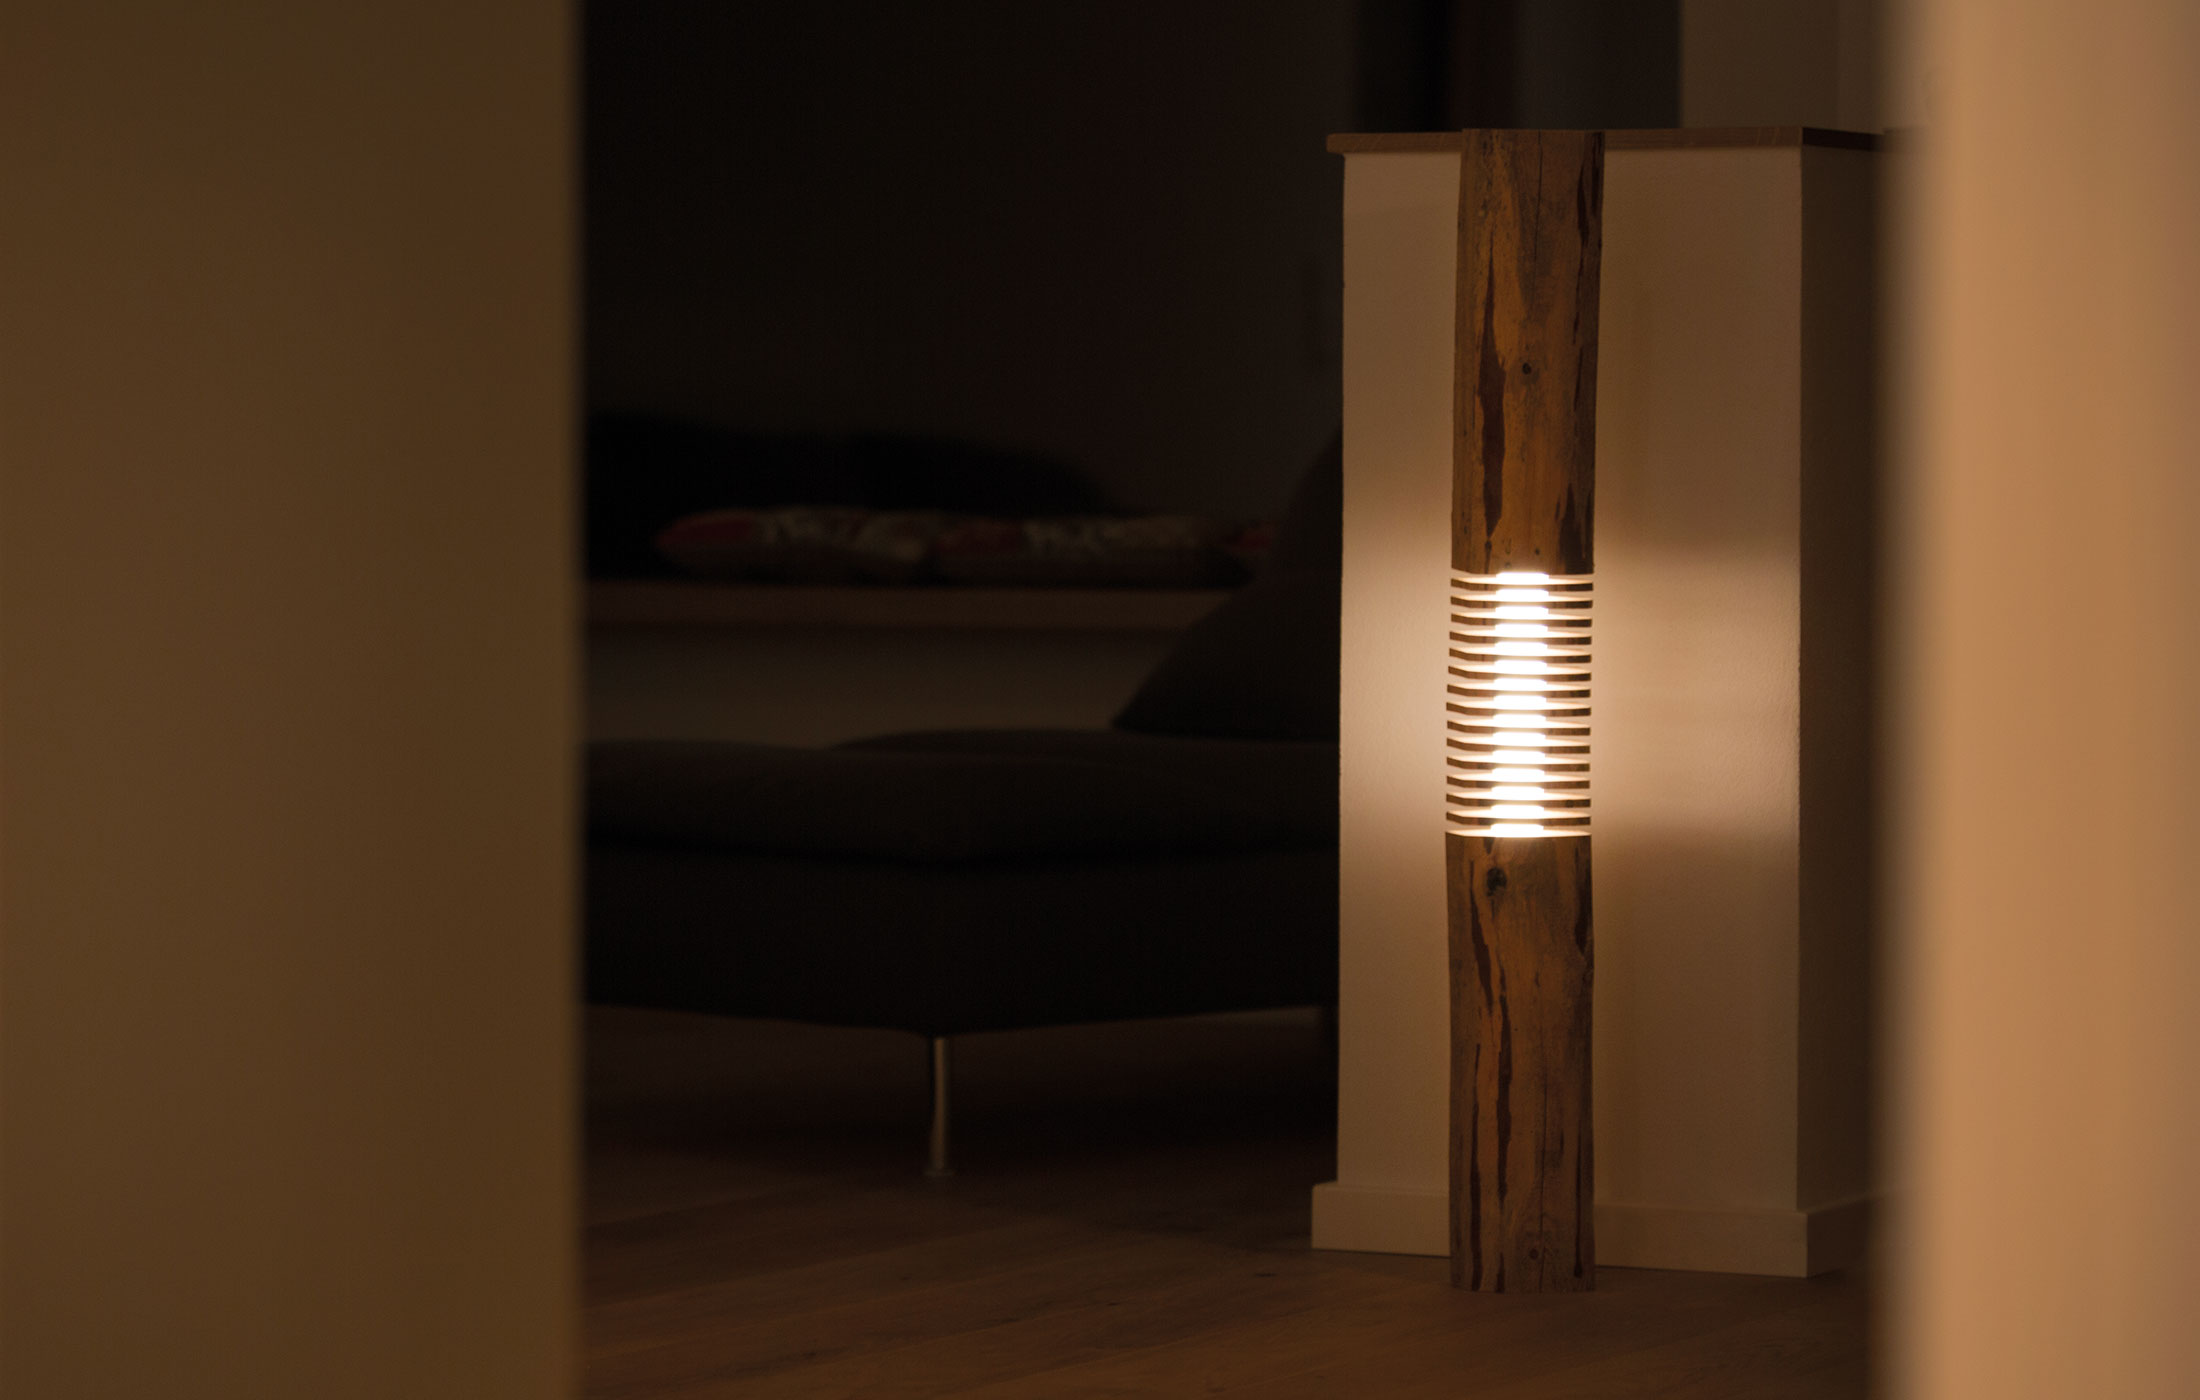 lampen mit led leuchtmittel unikate aus holz. Black Bedroom Furniture Sets. Home Design Ideas